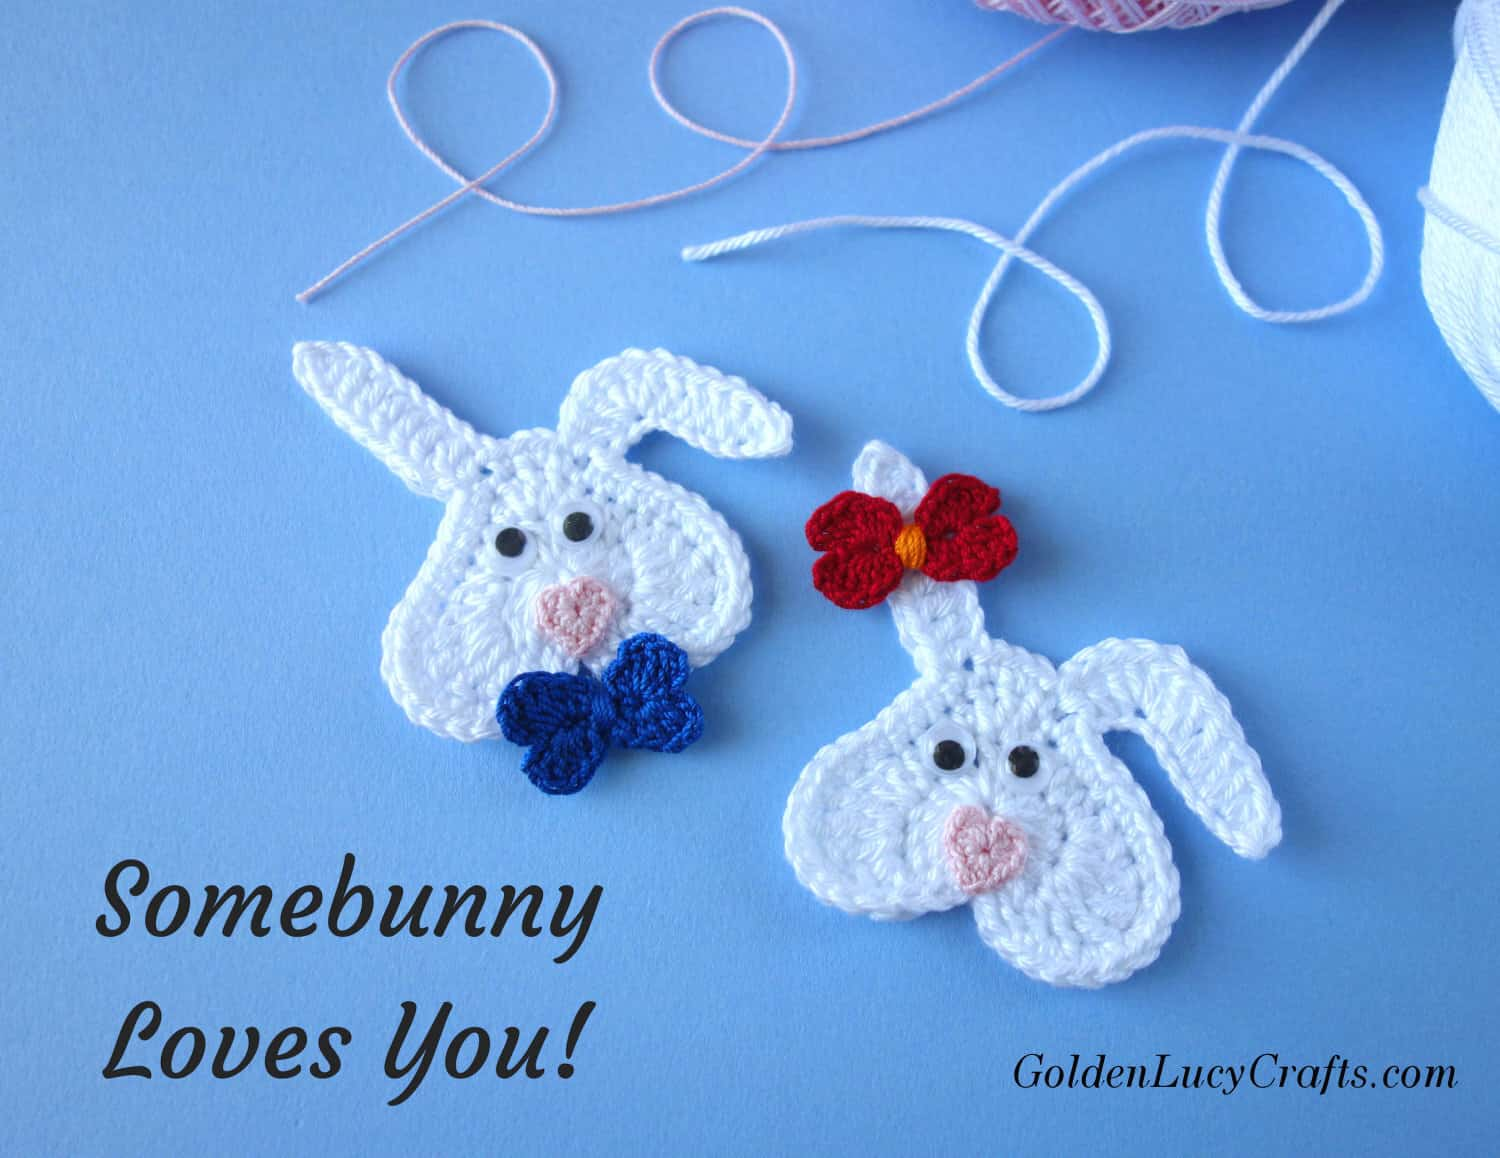 Crochet bunny pattern free, Valentine's bunny, Valentine's applique, Somebunny Loves You!